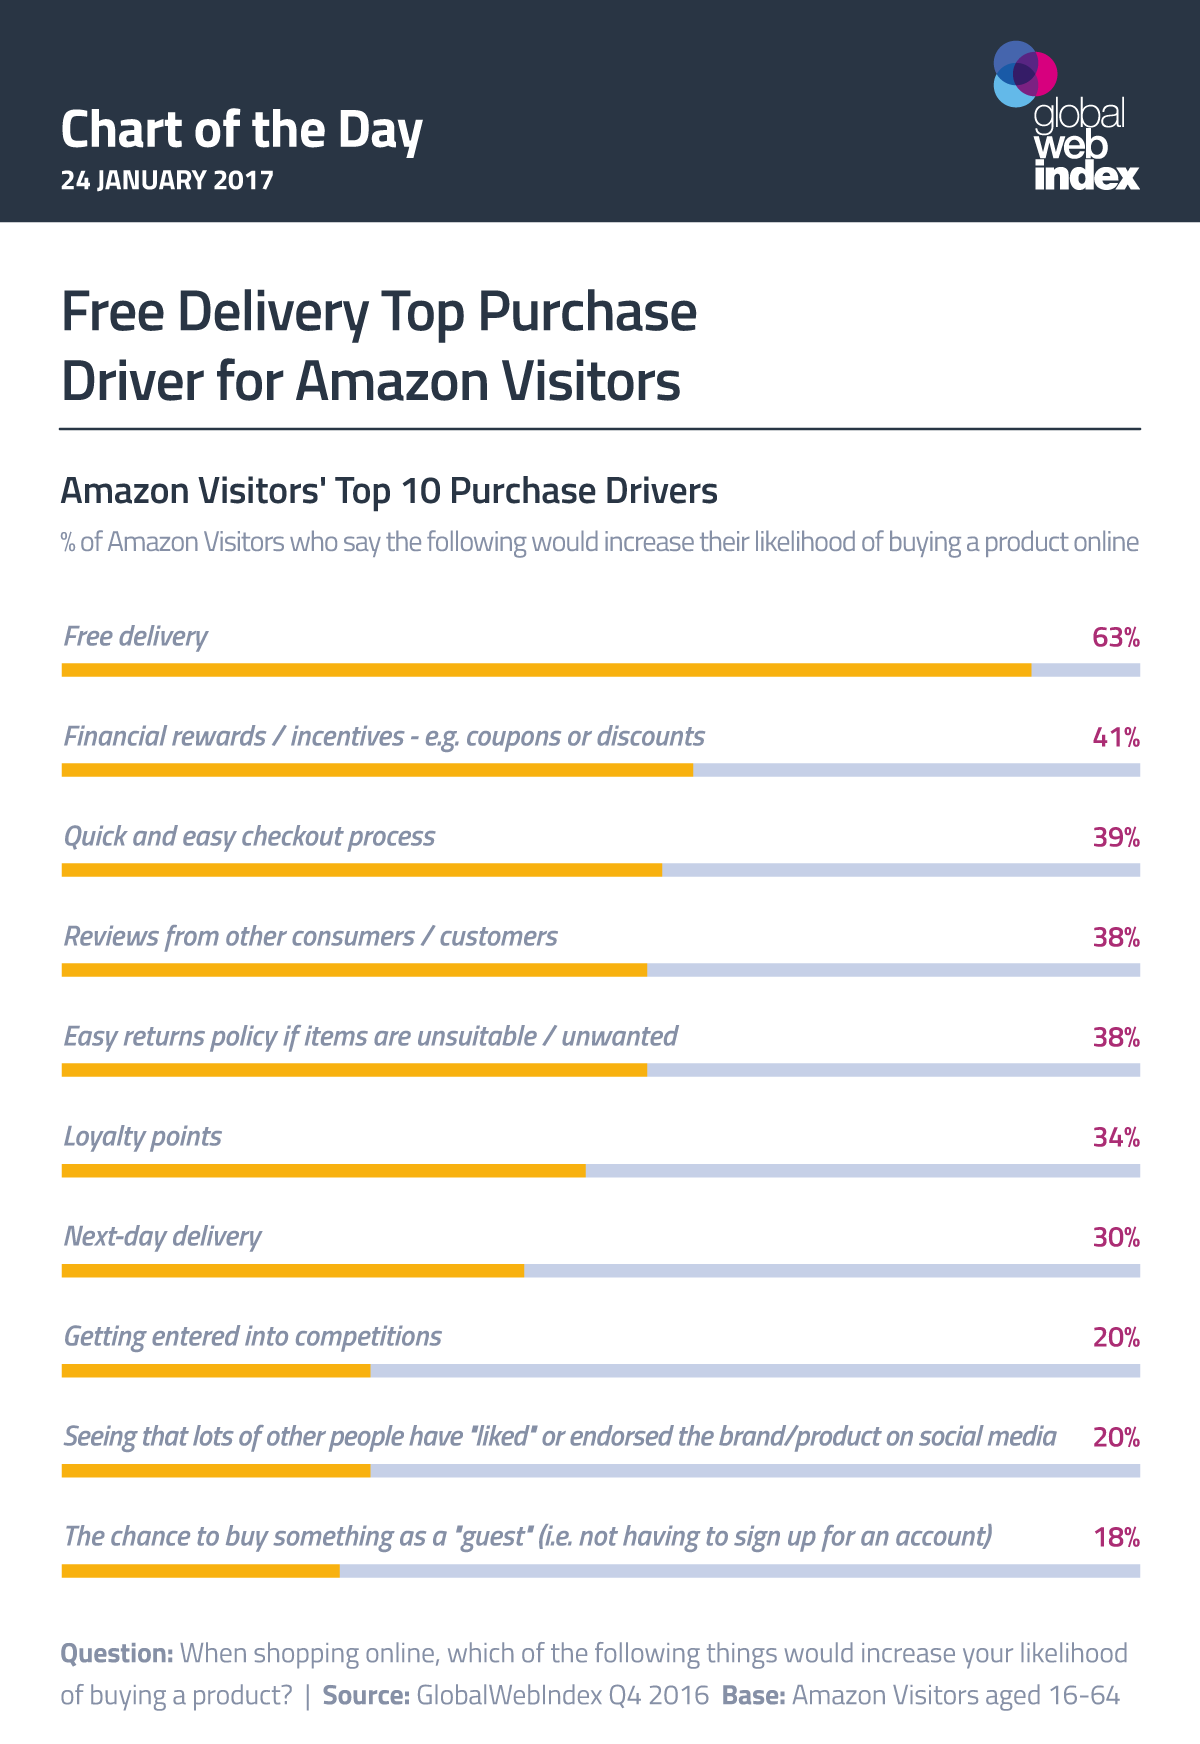 Free Delivery Top Purchase Driver for Amazon Visitors